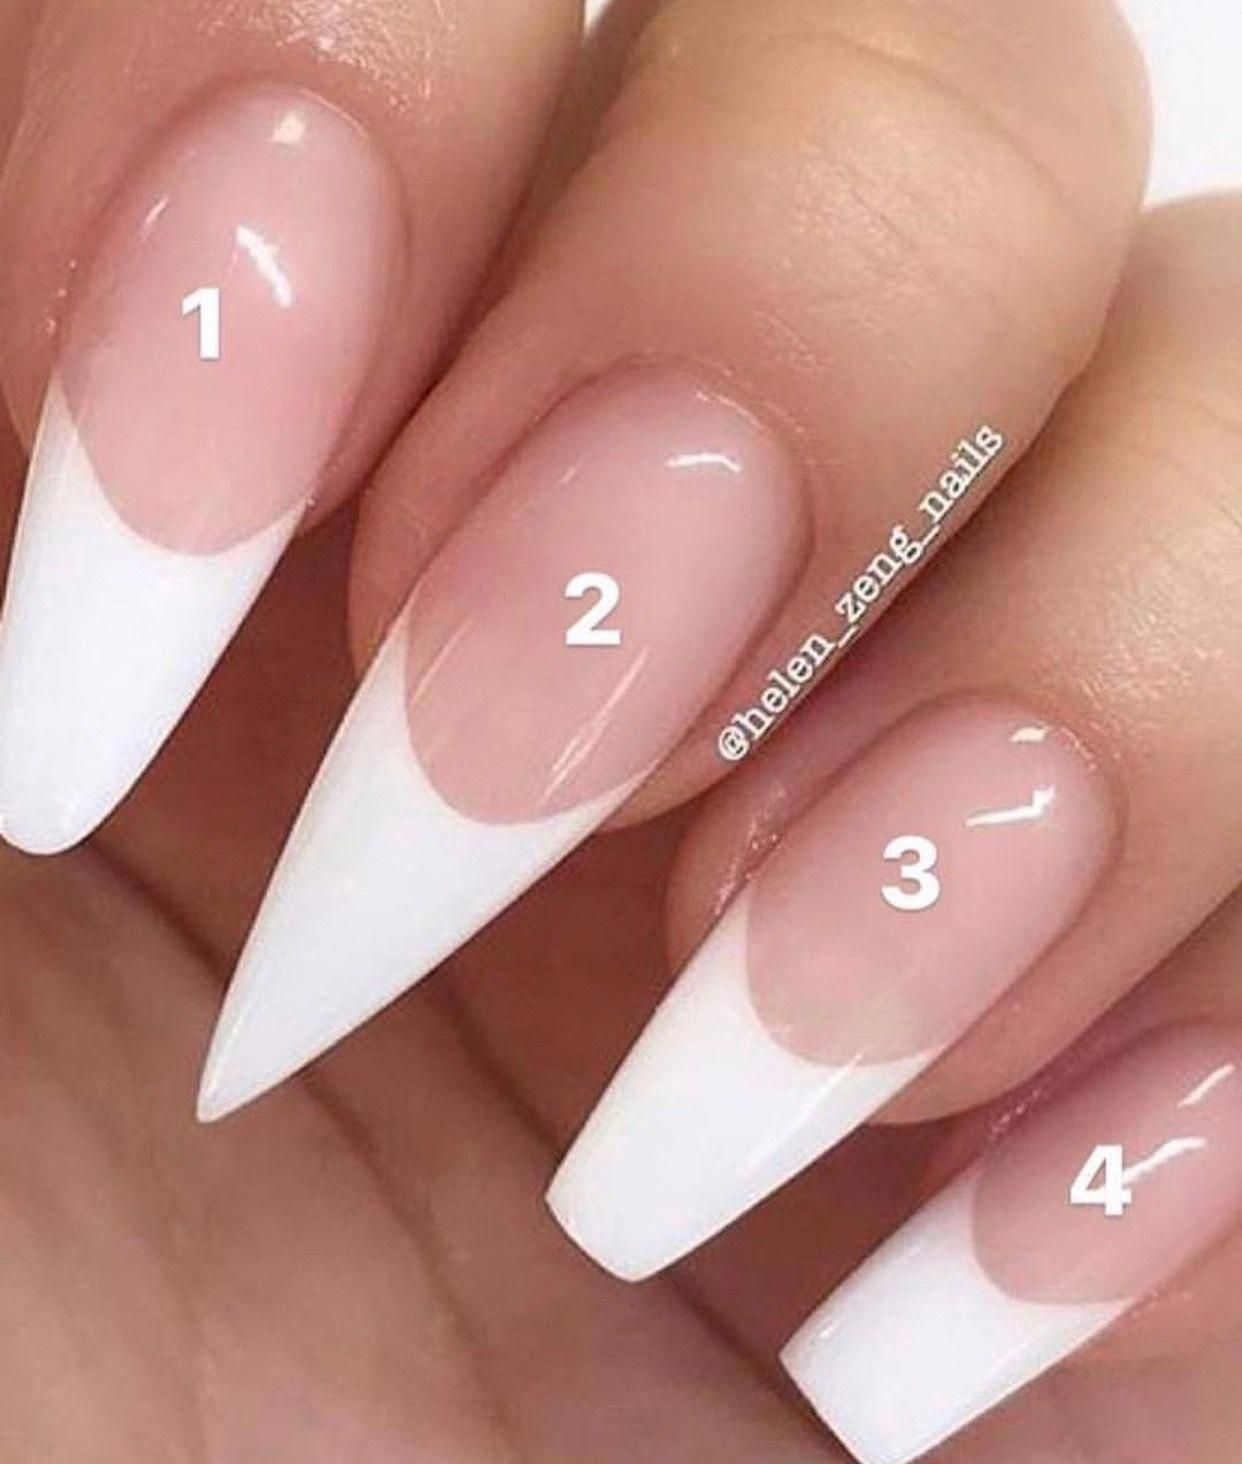 Acrylic Nail Styles Different Types Of Acrylic Nails Coffin Square Stiletto Rounded Nails Which Nail Is Yo Acrylic Nail Shapes Round Nails Types Of Nails